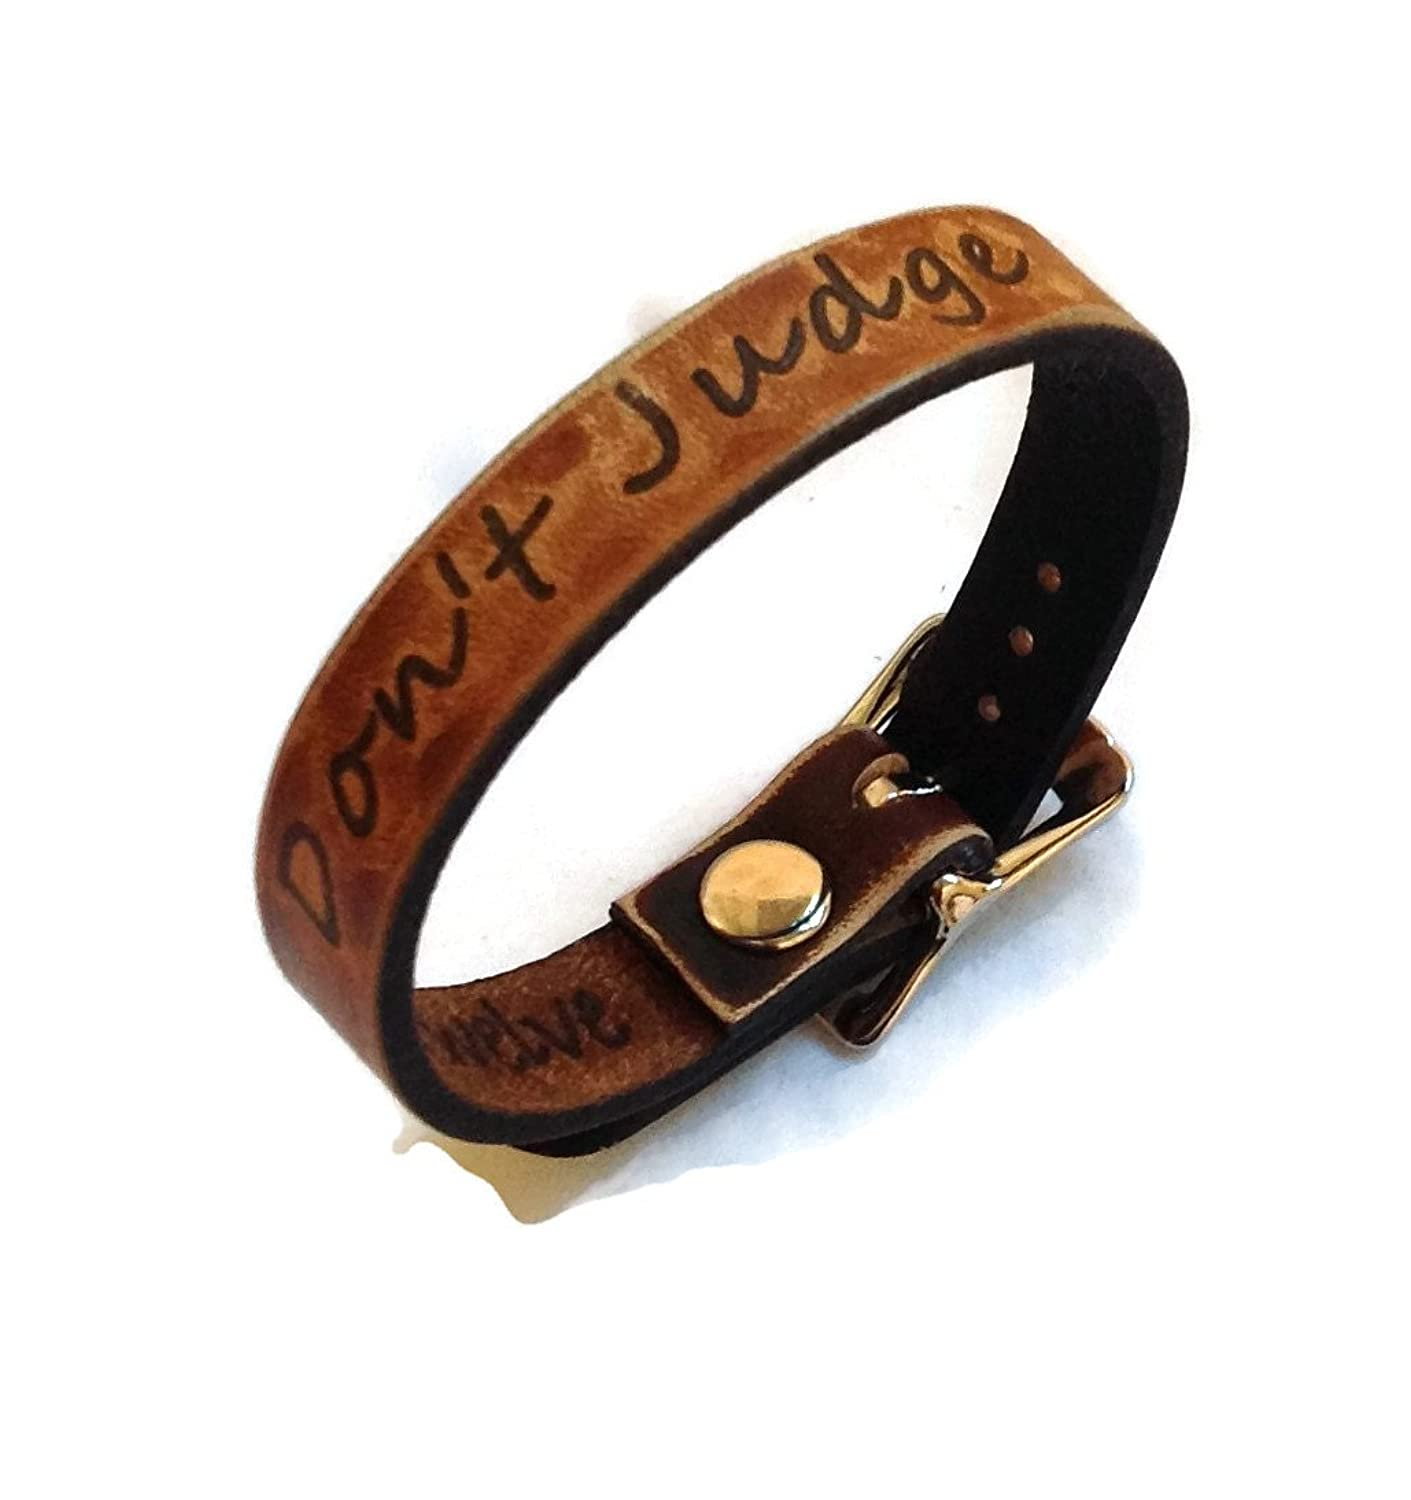 """Don't Judge"" Inspiration Collection Leather Bracelet 1/2"" Wide Made in USA"